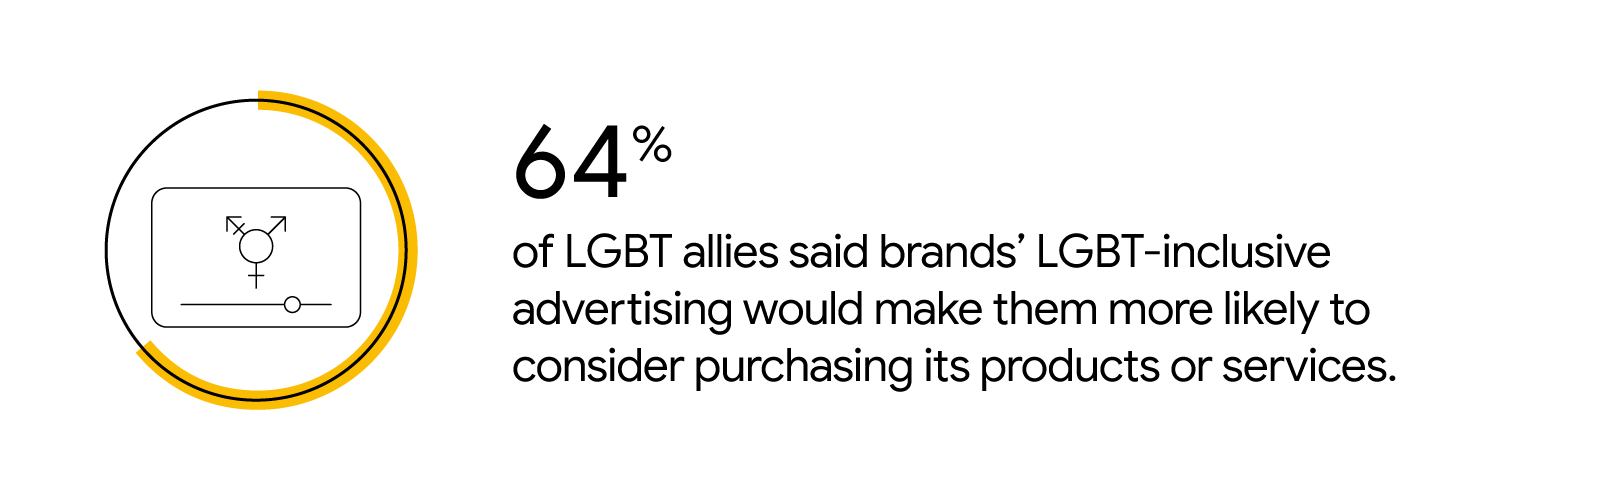 A circle graph represents the statistic that 64% of LGBT allies said brands' LGBT-inclusive advertising would make them more likely to consider purchasing its products or services.